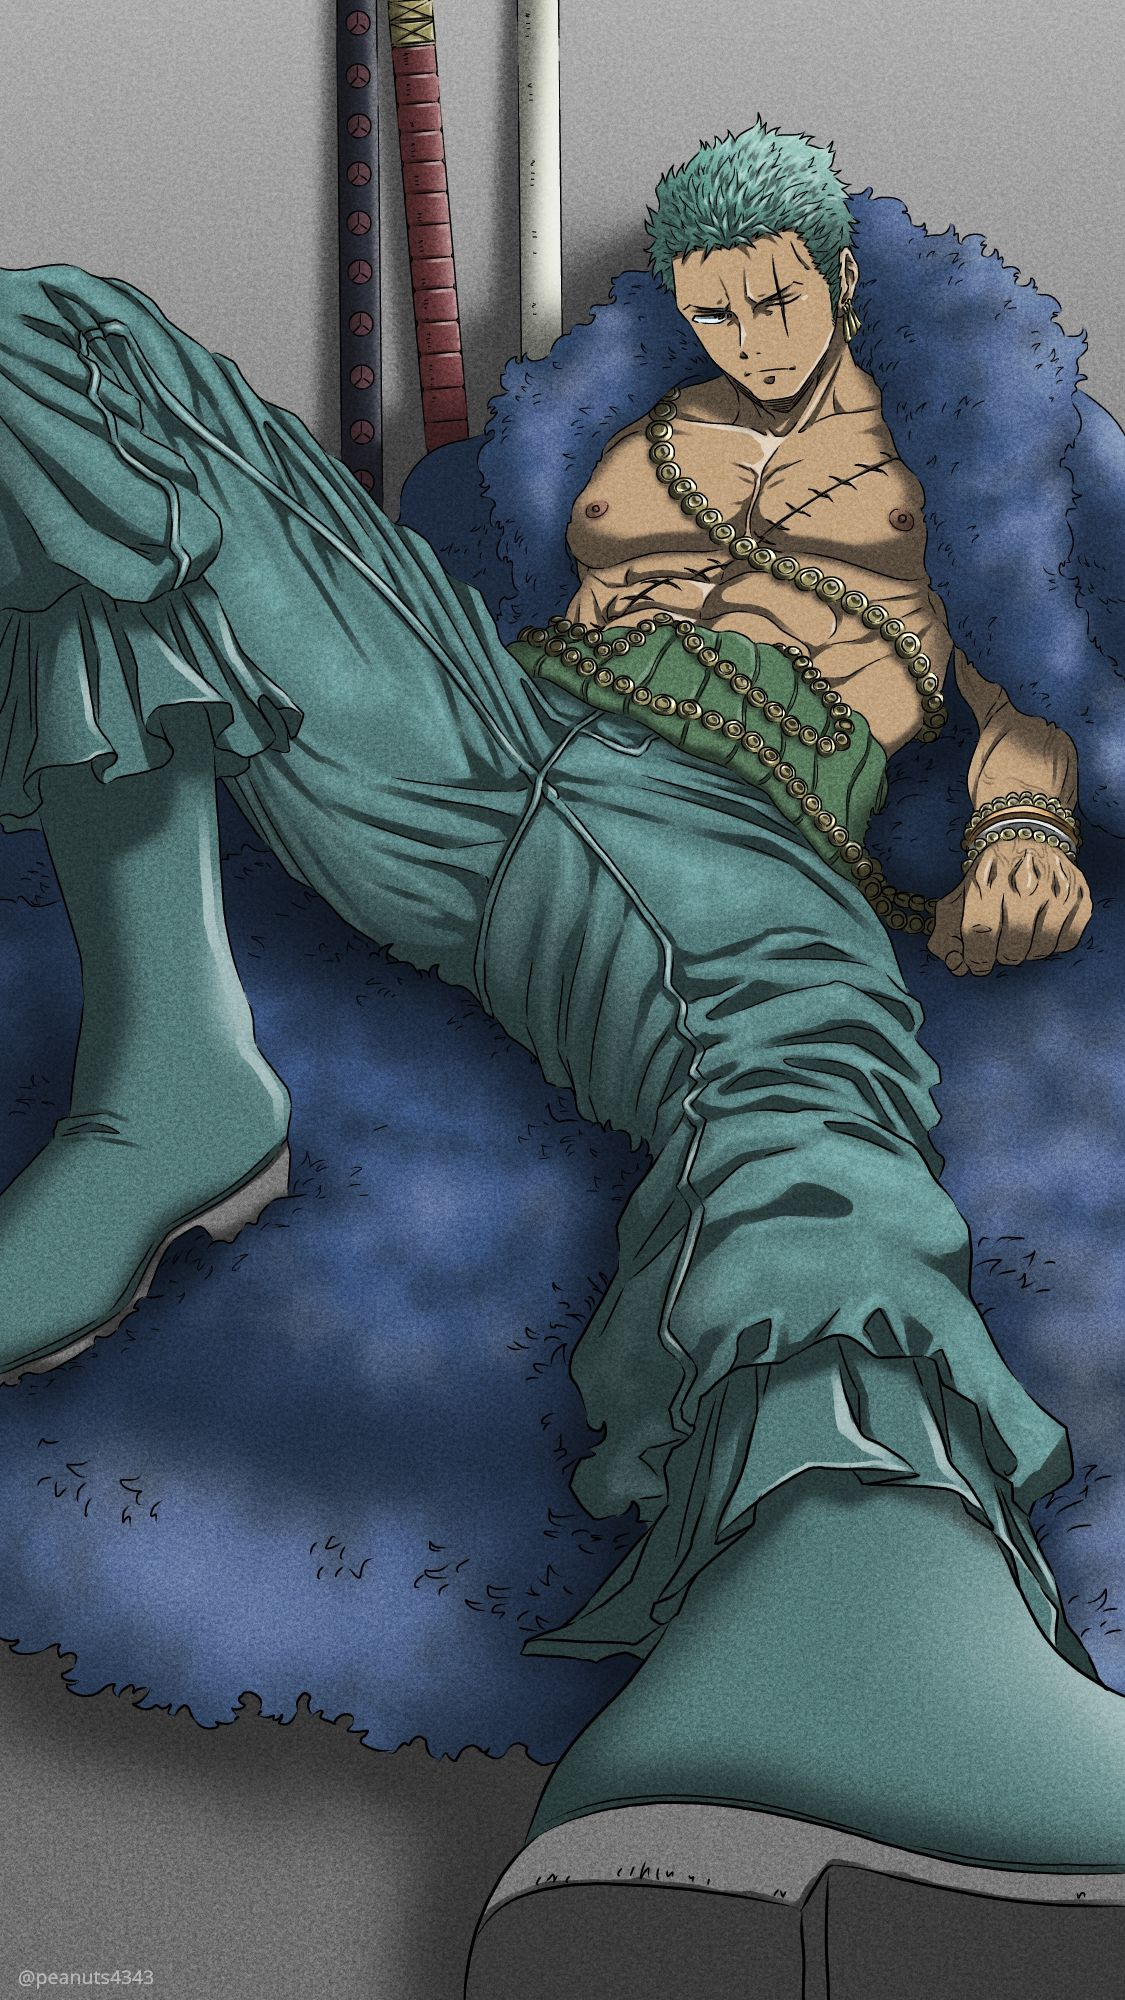 1boy abs bare_pecs dark_skin dark_skinned_male feather_boa foreshortening green_hair green_pants highres knee_up large_pectorals male_focus muscular muscular_male nipples one_piece pants pectorals pinattsu roronoa_zoro scar scar_across_eye scar_on_chest sheath sheathed short_hair sitting solo spread_legs stomach